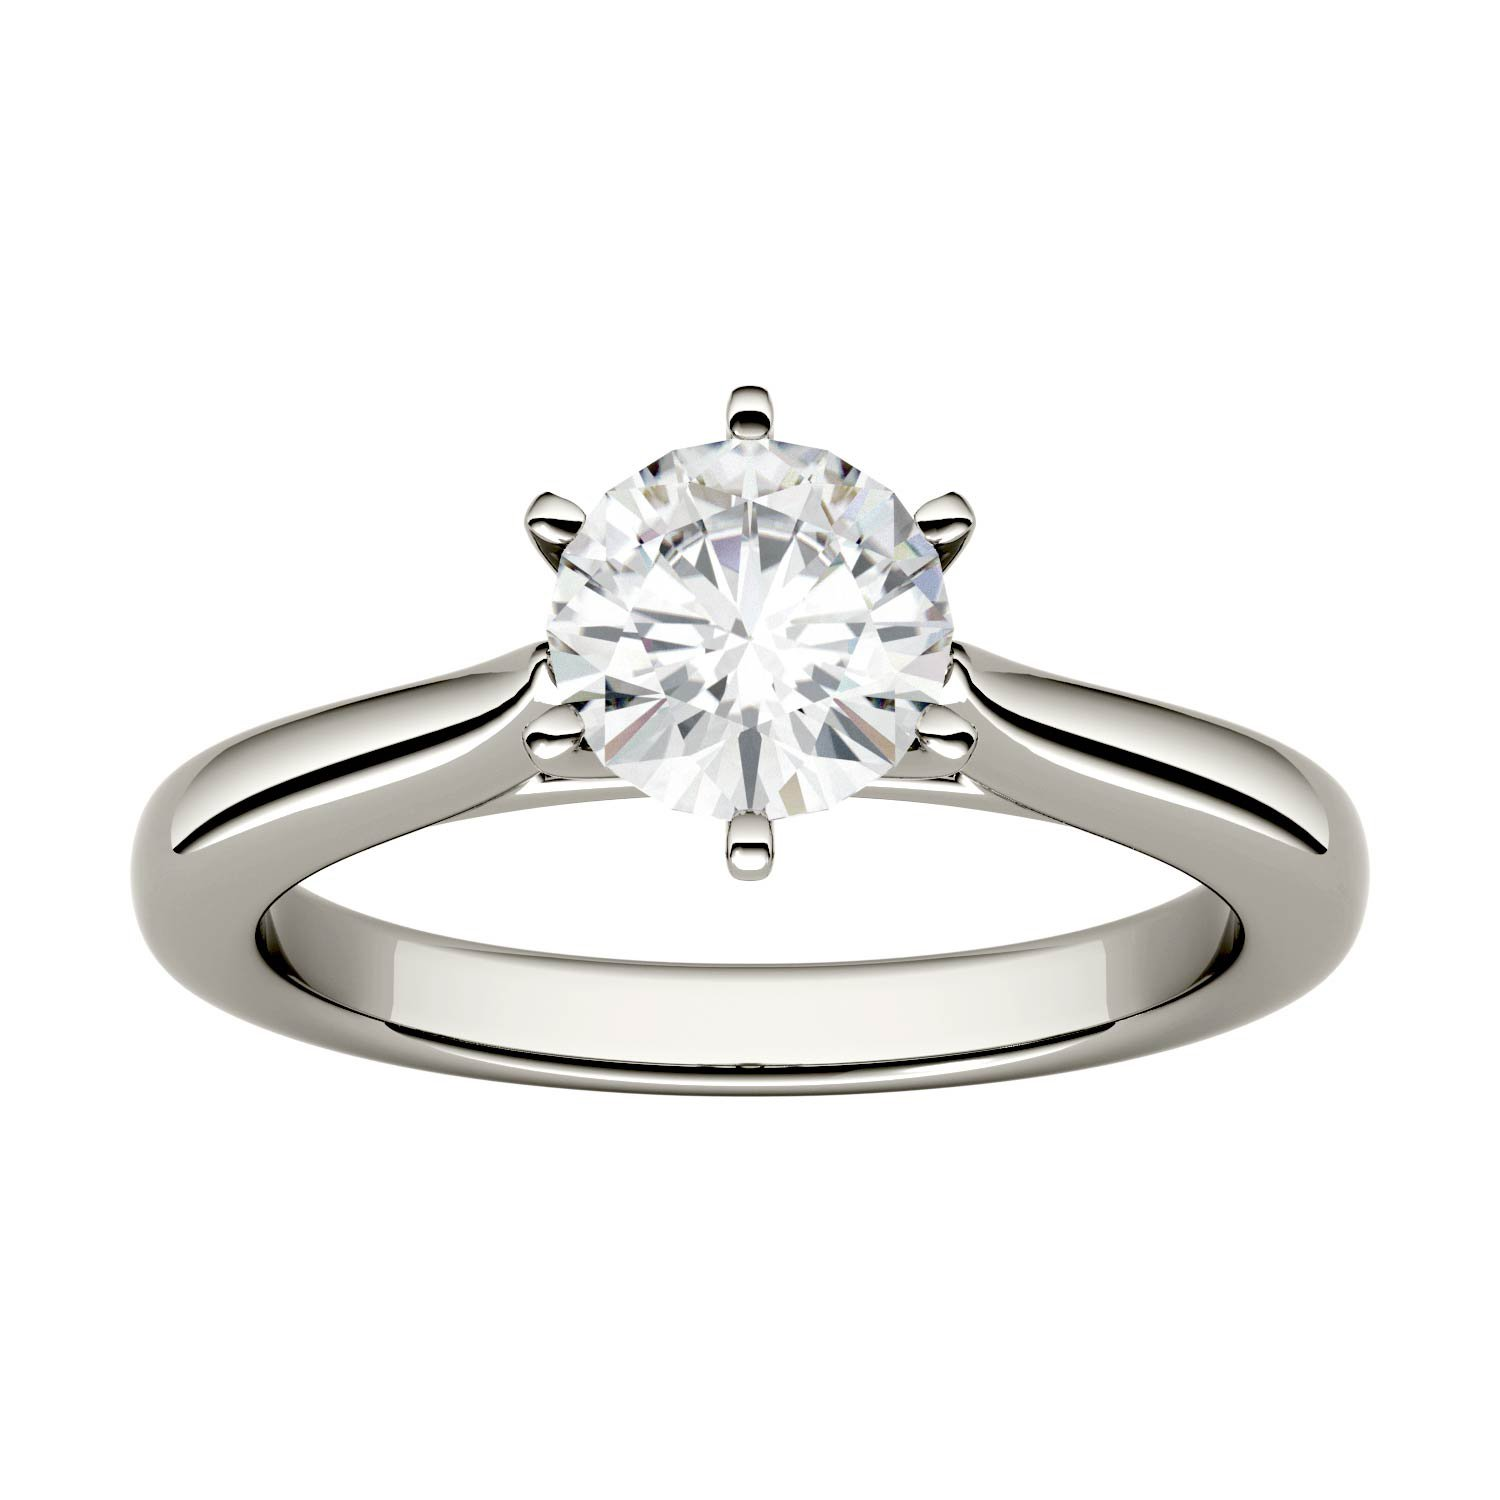 Forever One Round 6.5mm Moissanite Engagement Ring-size 7, 1.00ct DEW By Charles & Colvard